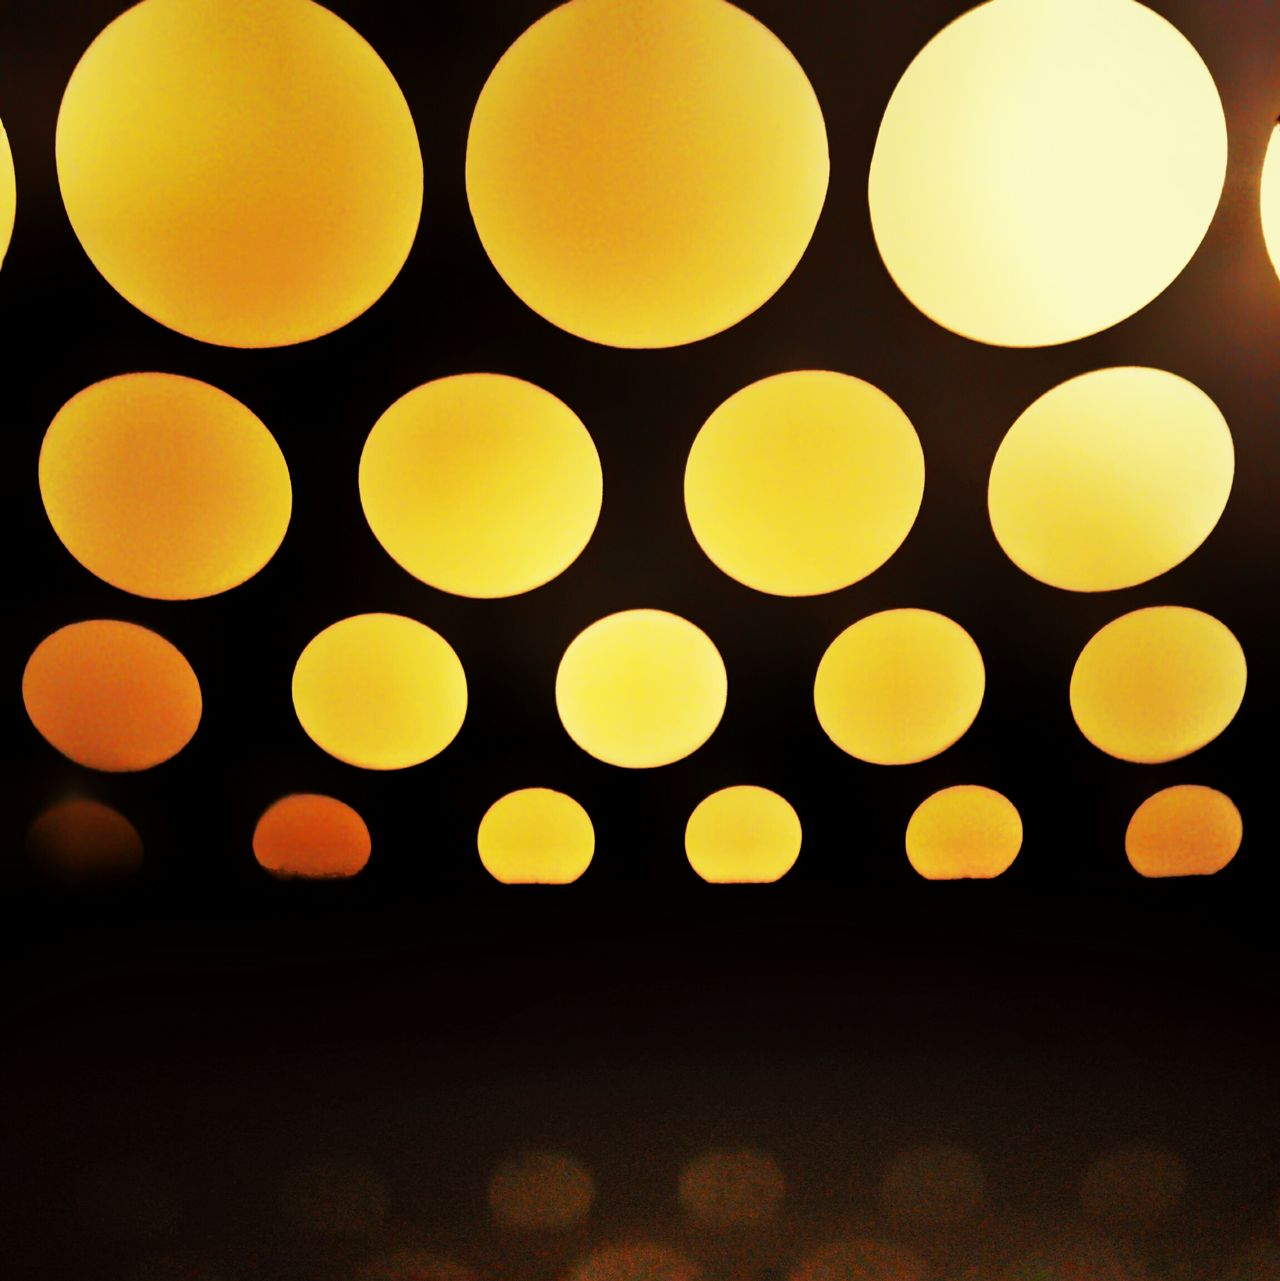 Circle No People Backgrounds Black Background Close-up Indoors  Freshness Abstract Pattern Gradient Circles Minimalism Light Source Projection Reflection Minimal Monochrome Blackandorange Sequence